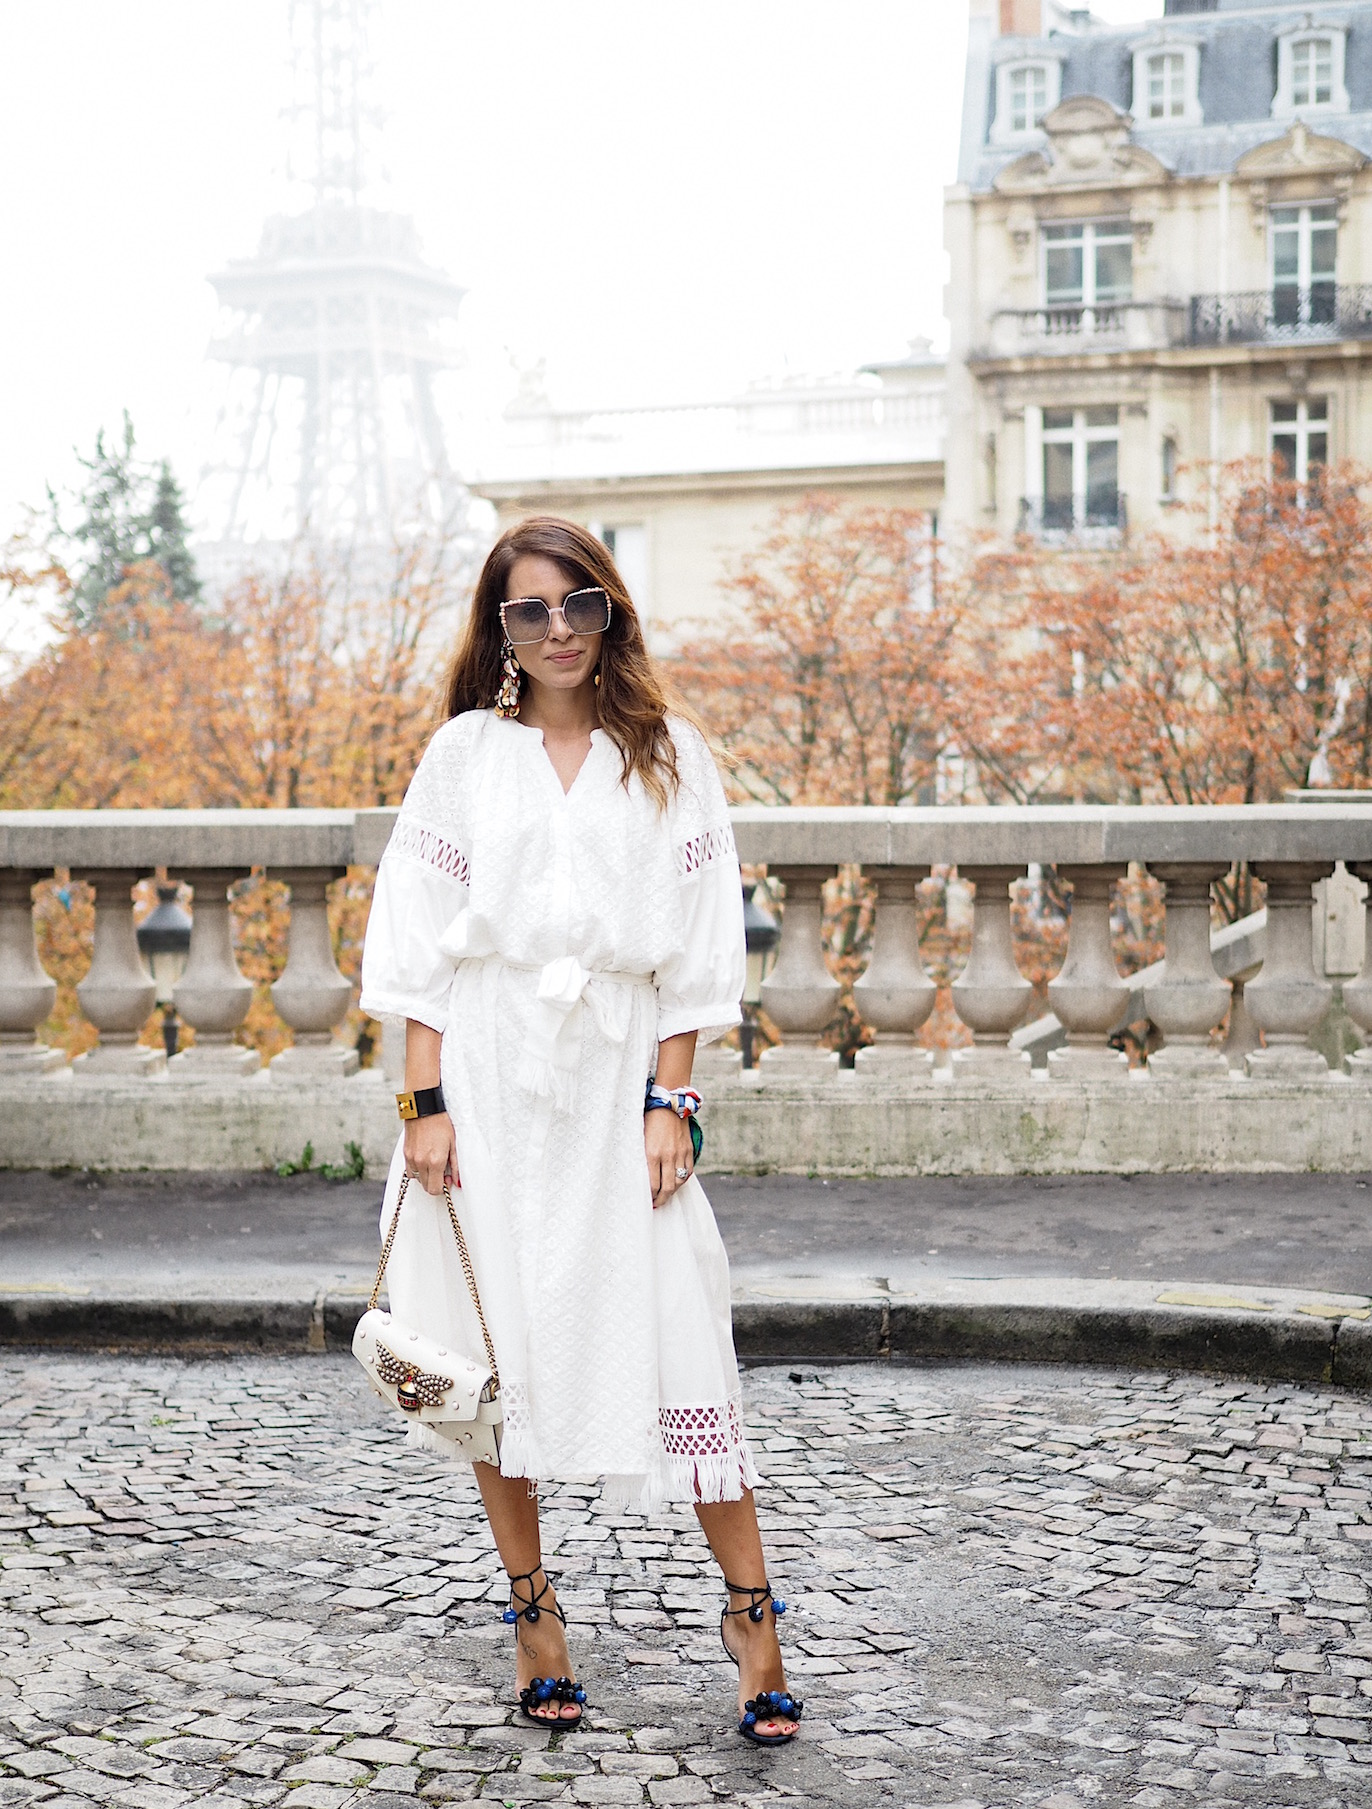 paris-fashion-week-street-style-storest-white-dress-gucci-bag-aquazzura-shoes